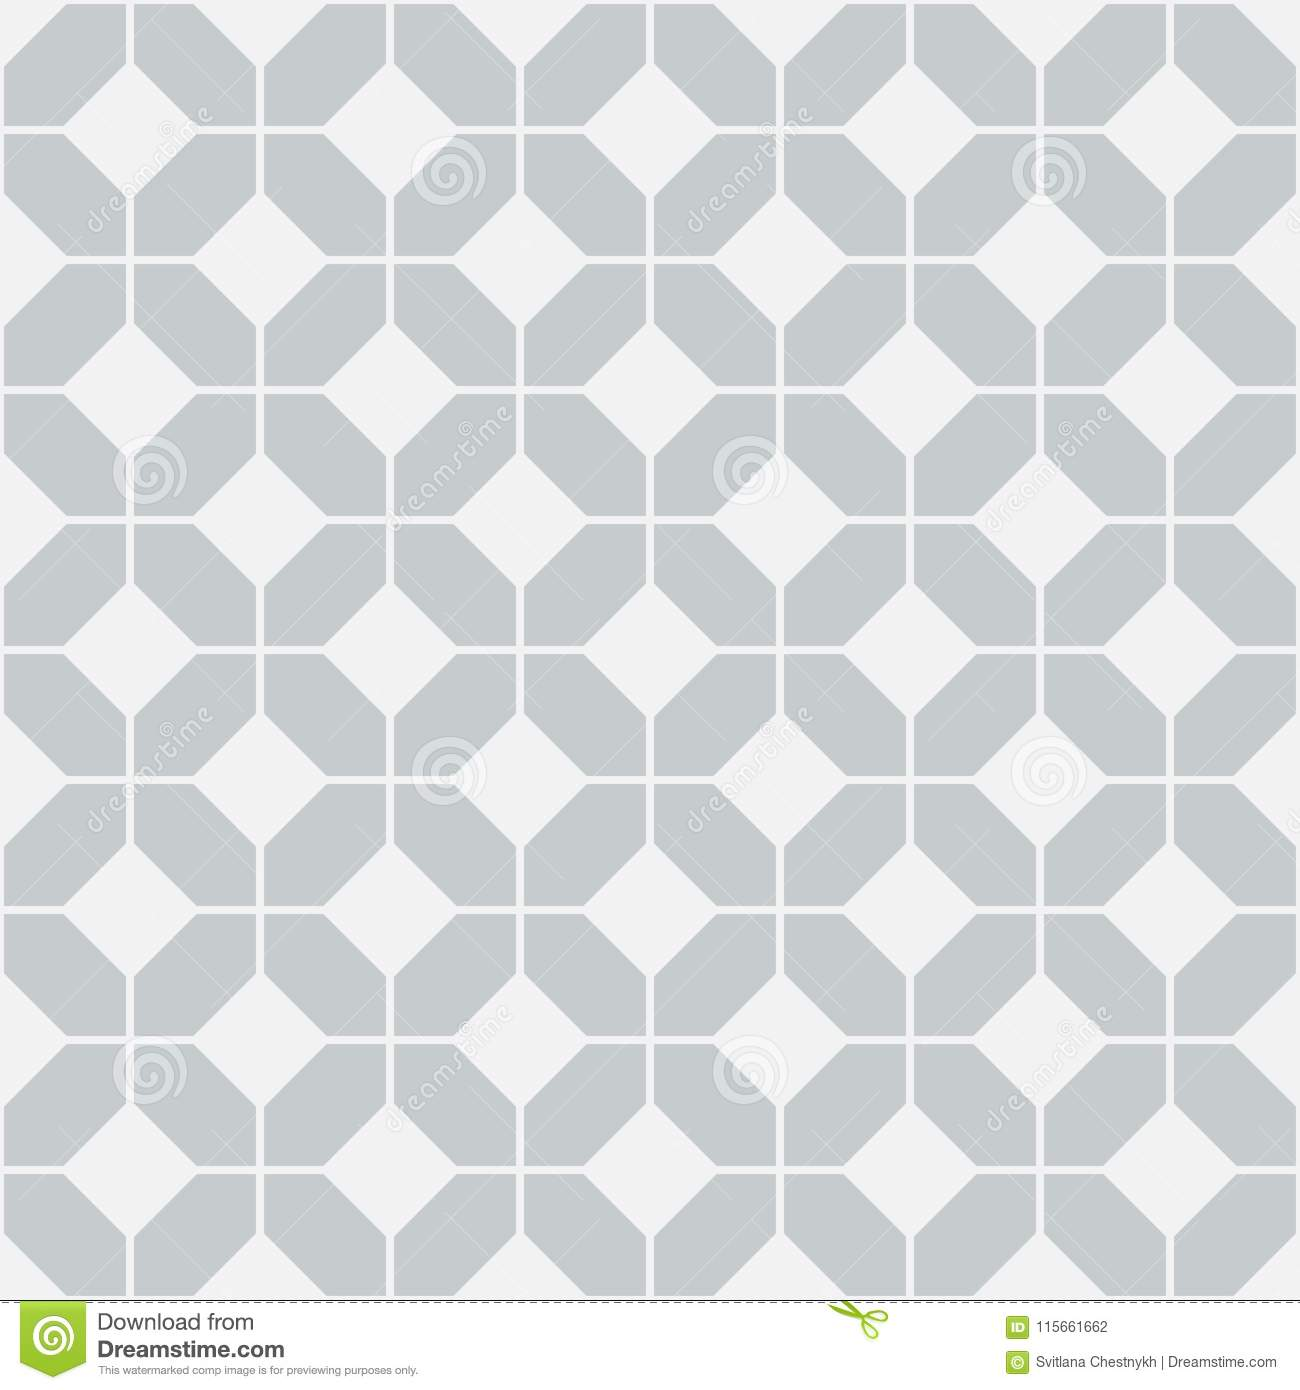 https www dreamstime com simple floor tile pattern abstract geometric seamless background portuguese tiles vector illustration ceramic image115661662